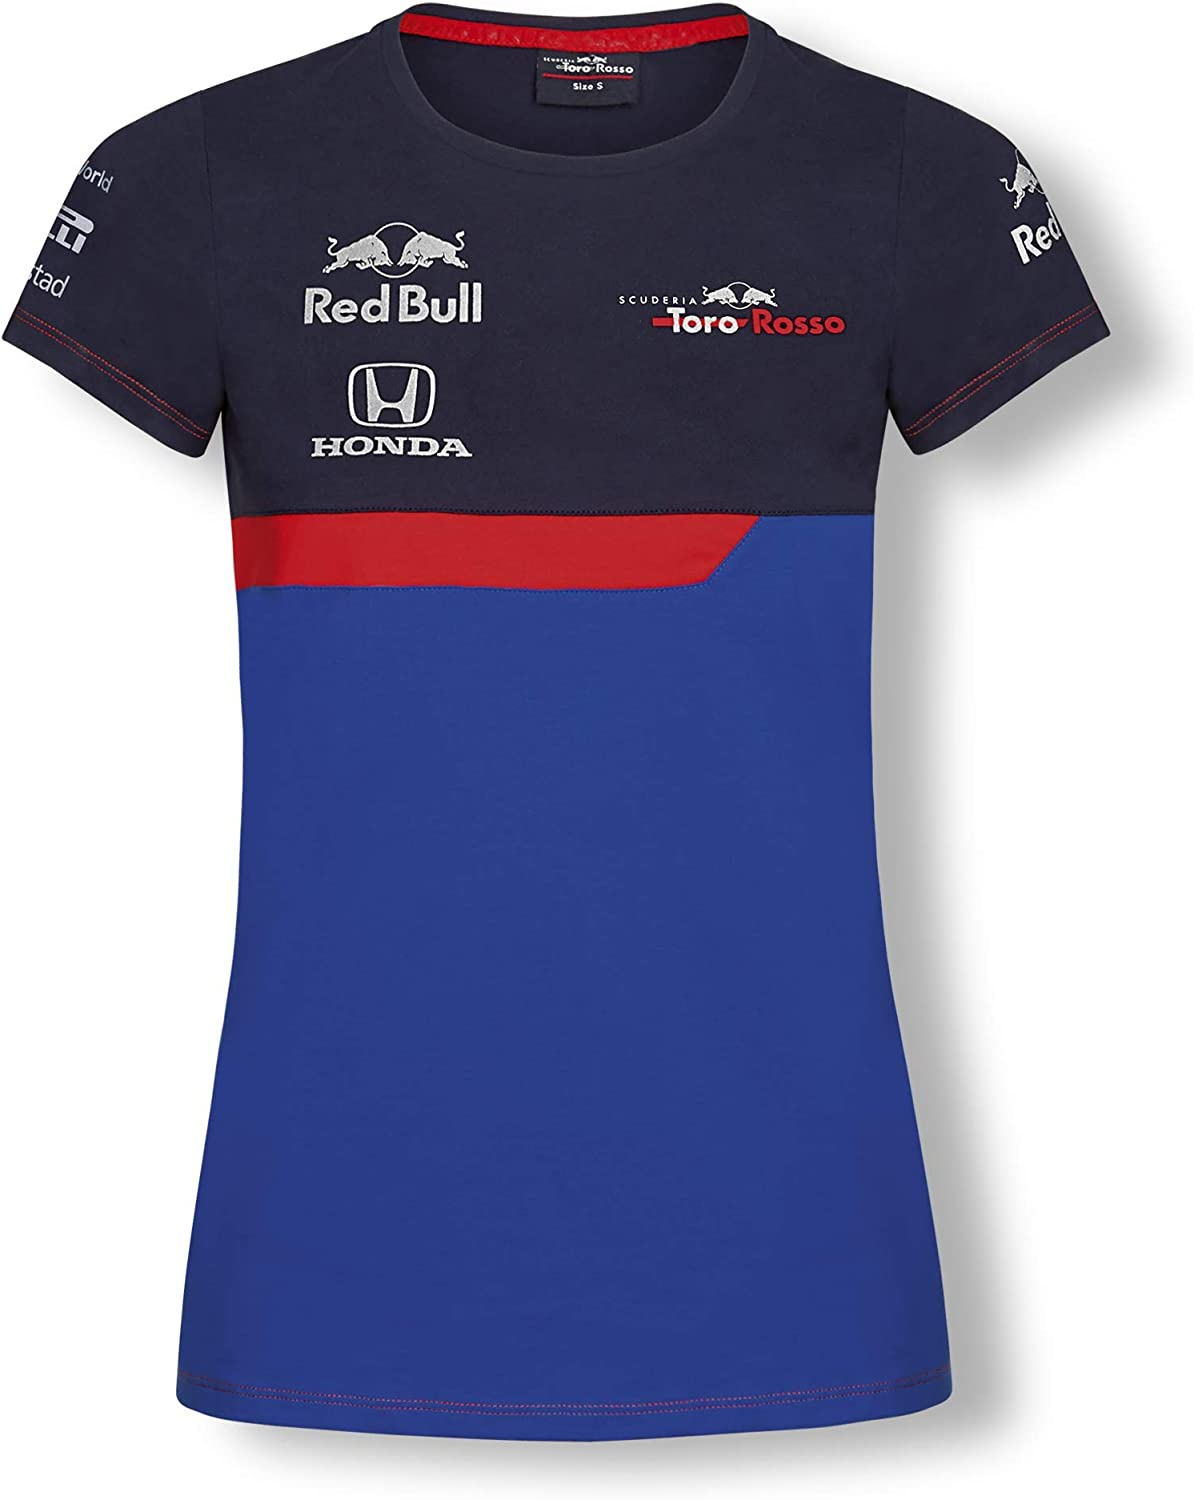 Scuderia Toro Rosso F1 Superior T-Shirt Challenge the lowest price of Japan Team Women's 2019